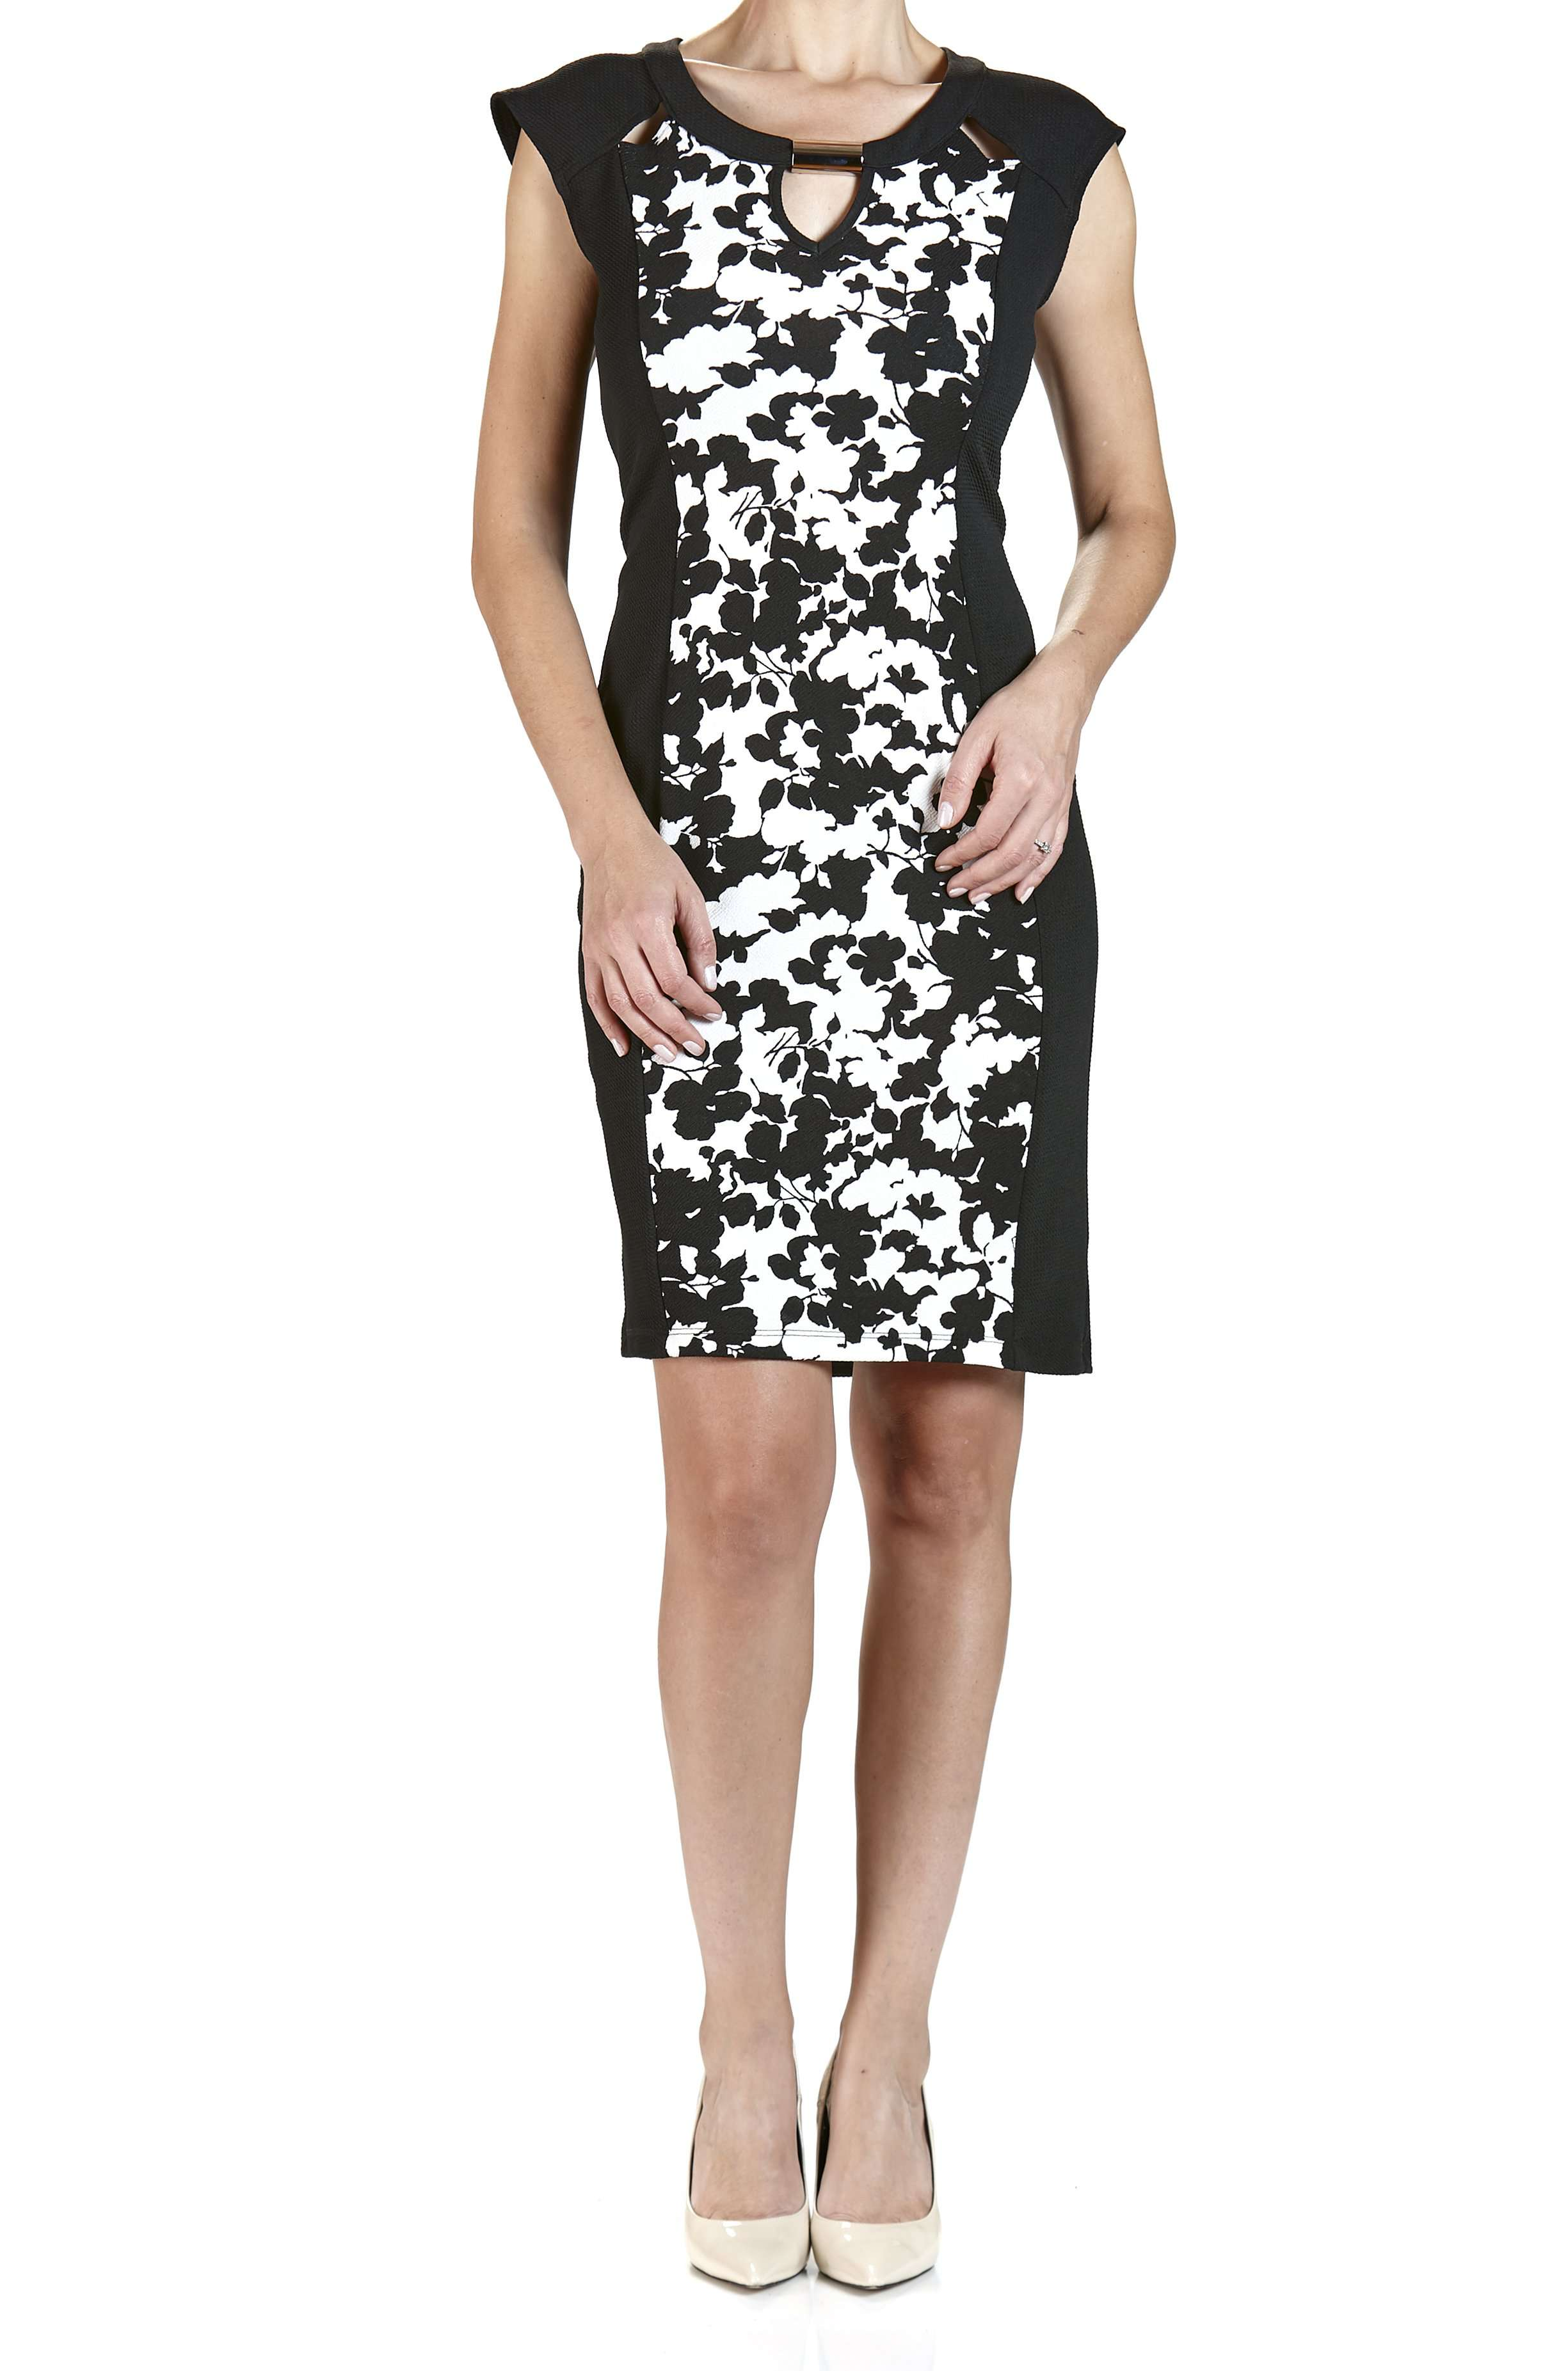 Black and Ivory Dress with Peek-a-boo Neckline - Yvonne Marie